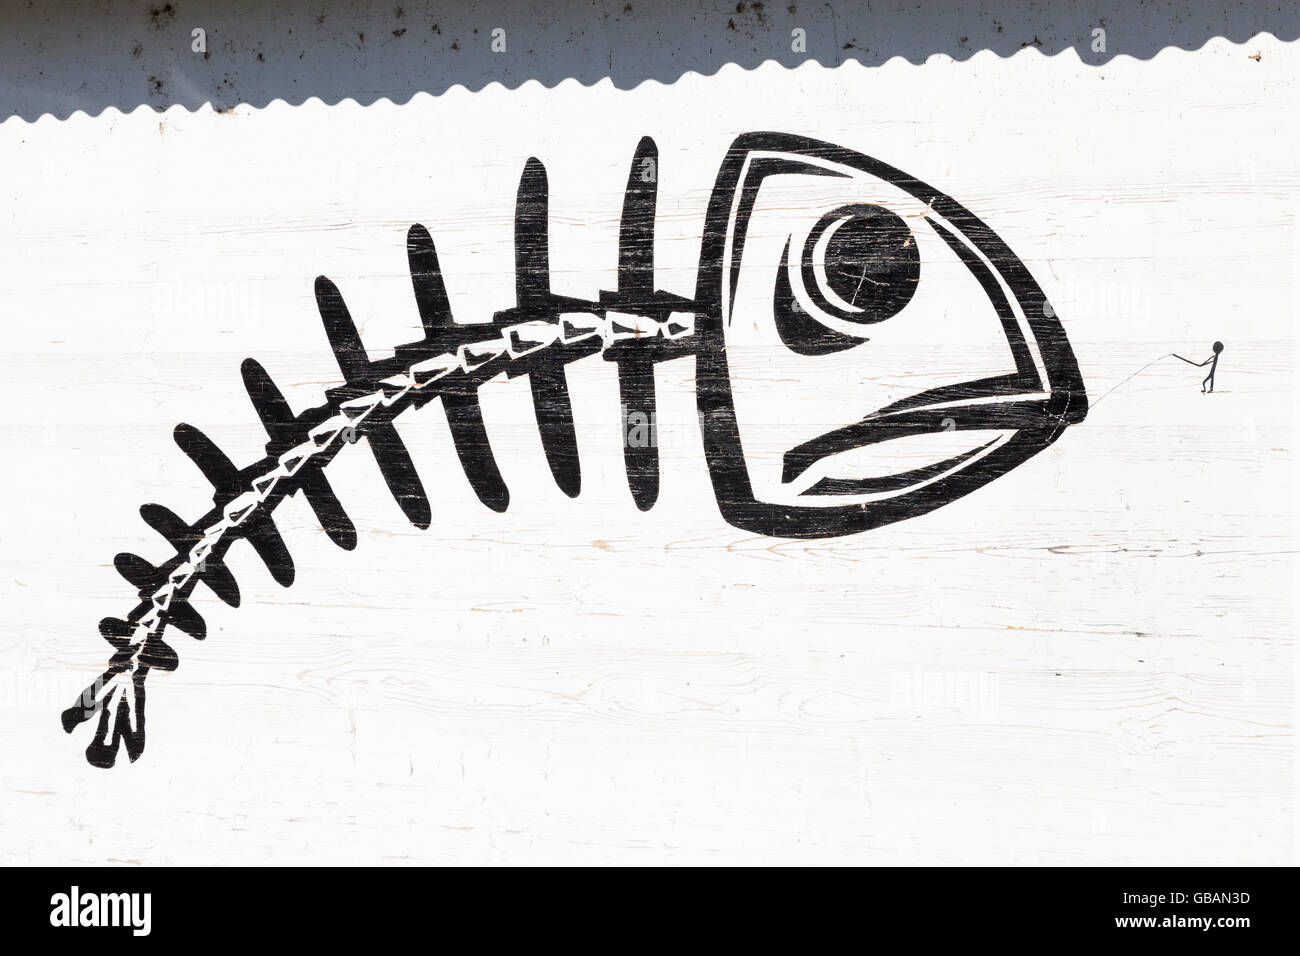 Graffito of a big black skeletal fish on a white wall being caught by a tiny stick figure - Stock Image